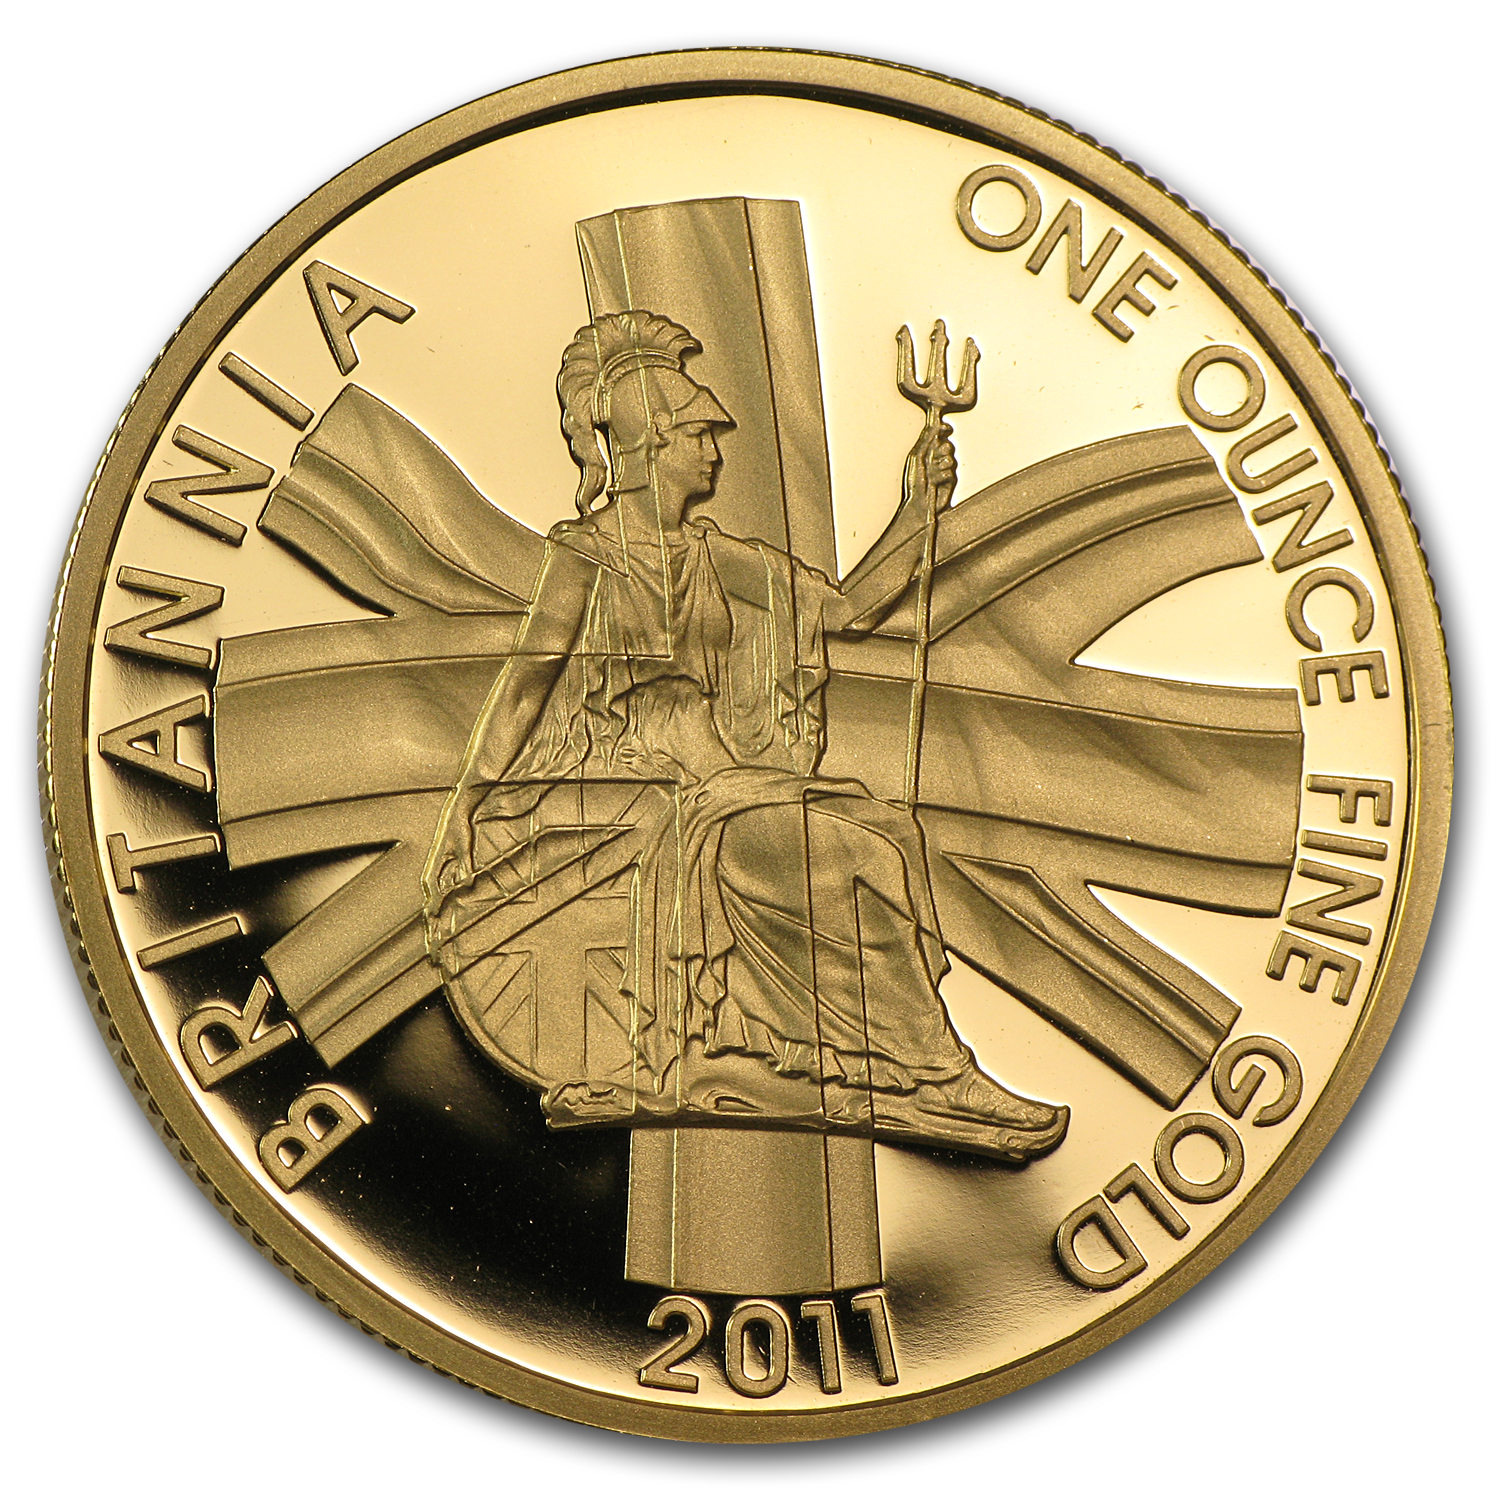 2011 1 oz Proof Gold Britannia (Capsule)